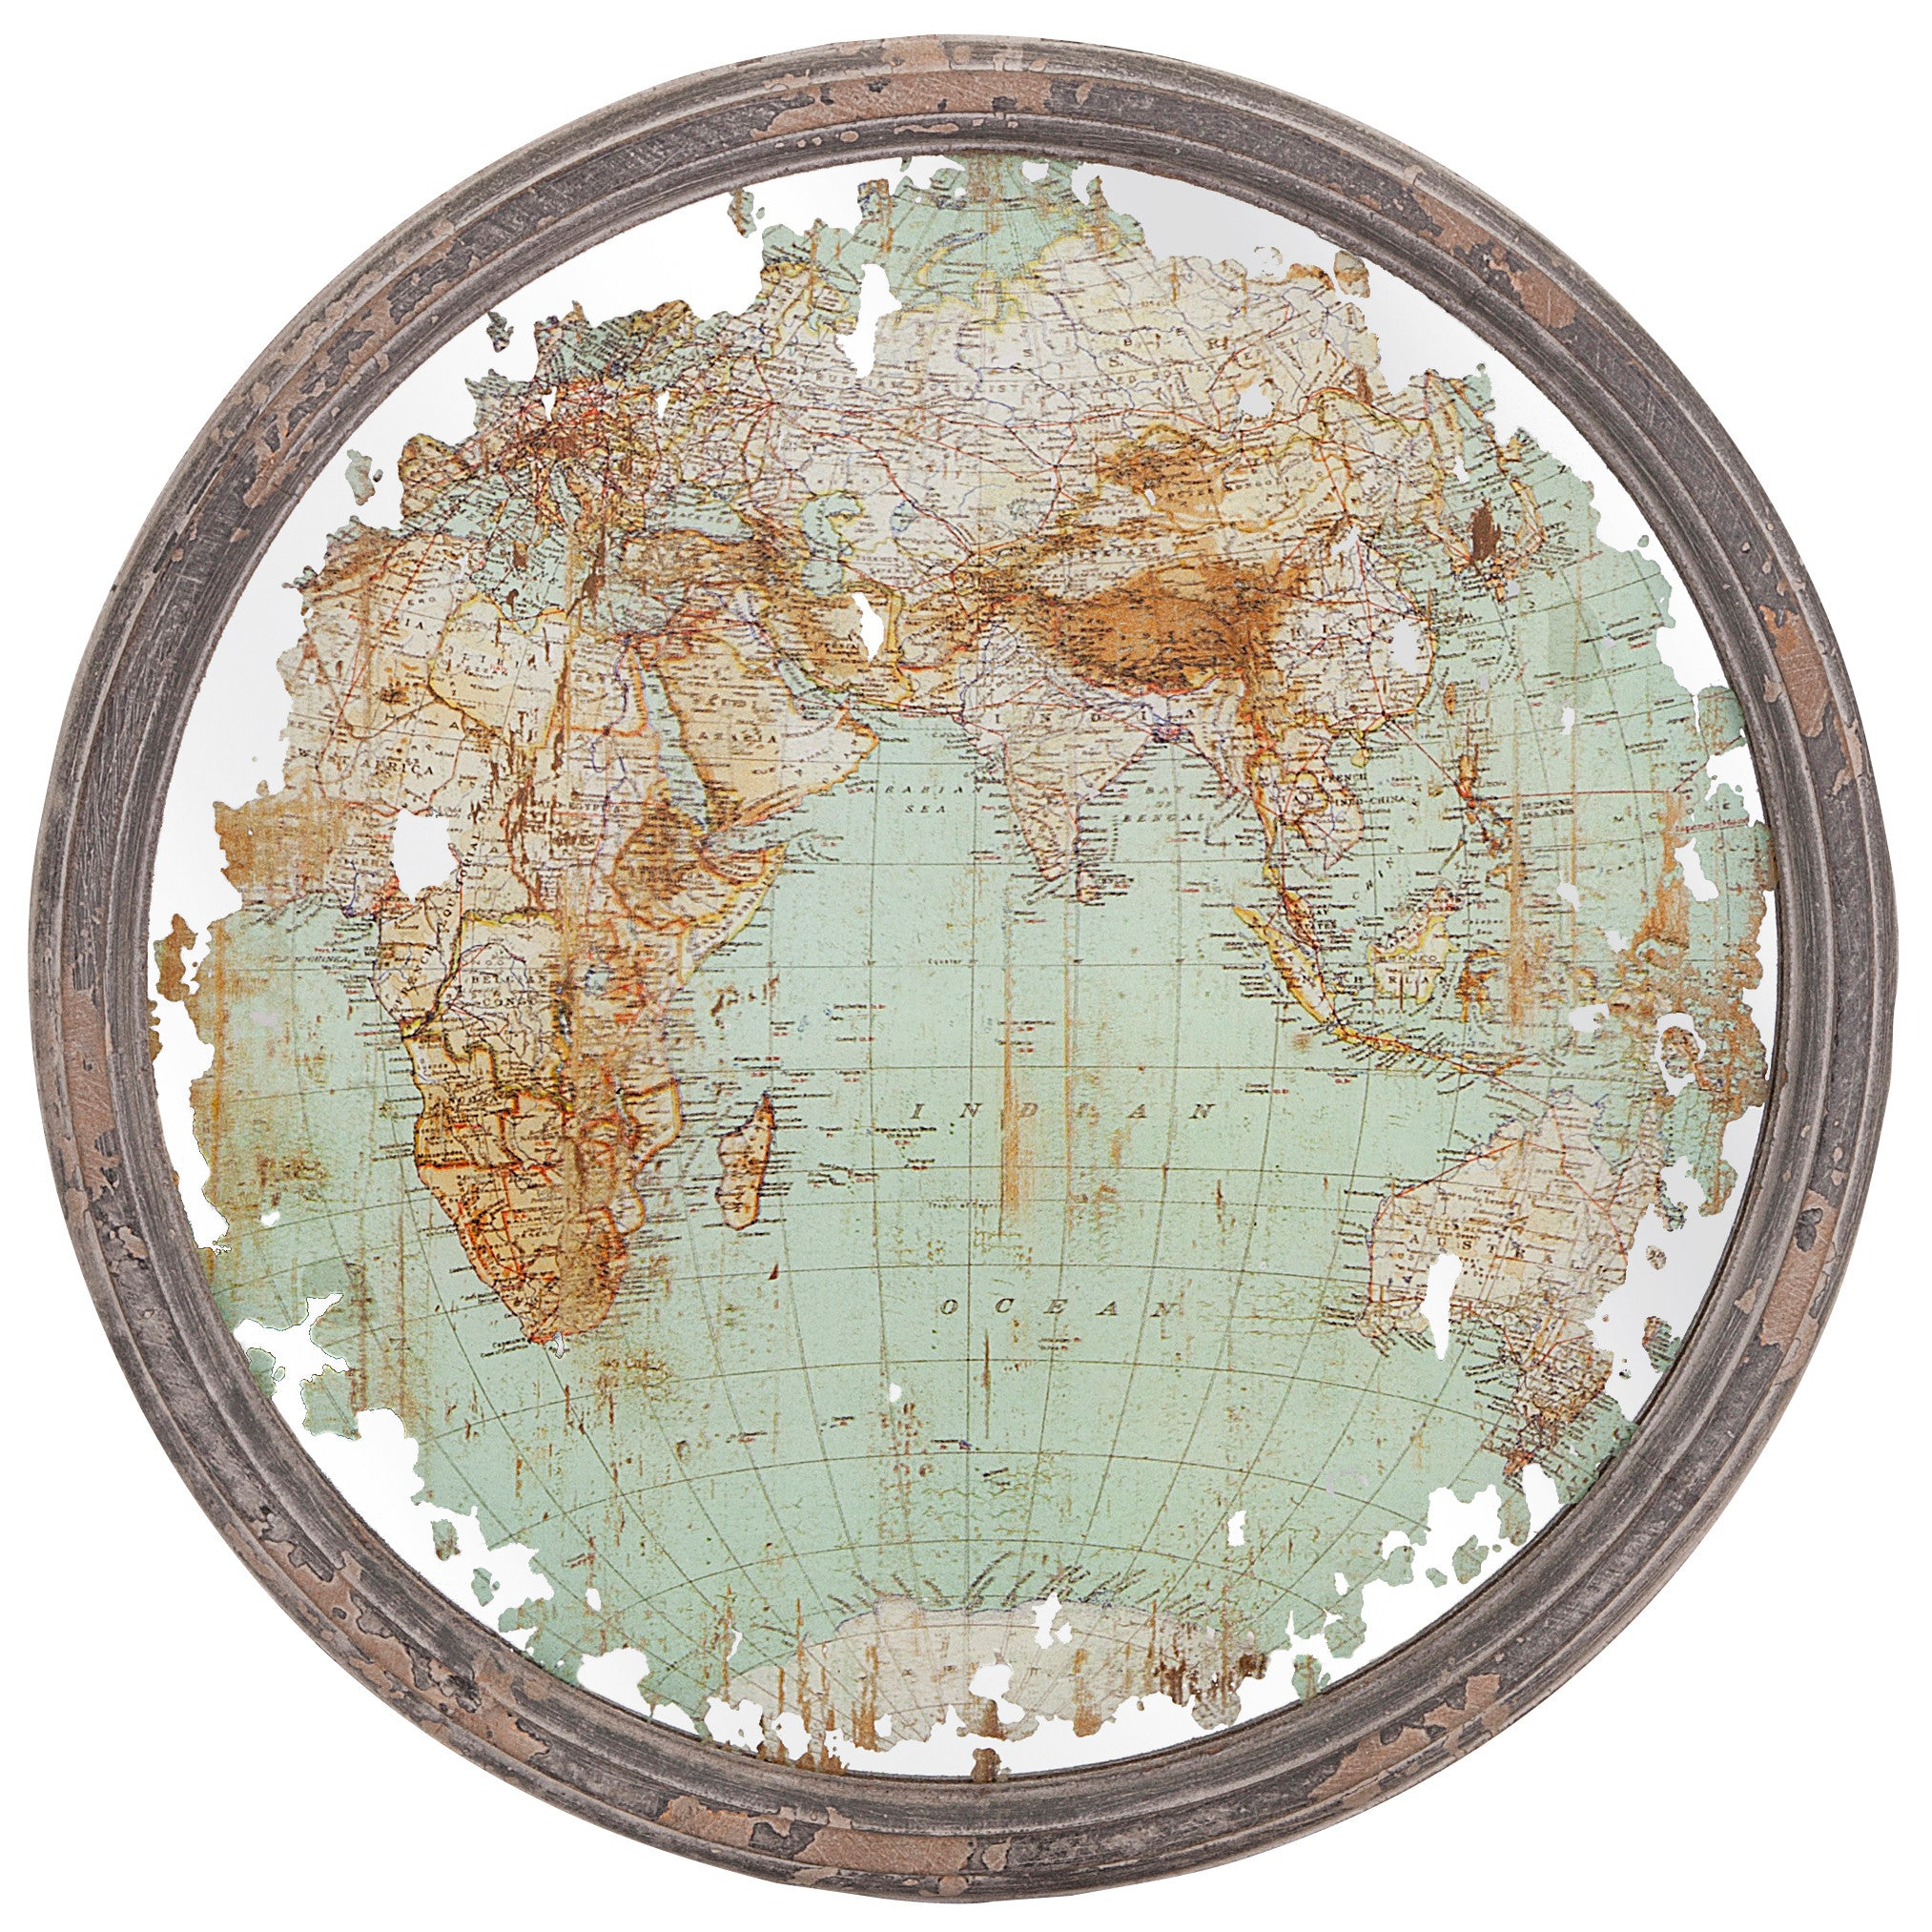 Rustic Mirror Map Industrial Modern Wall Art - Set of 3